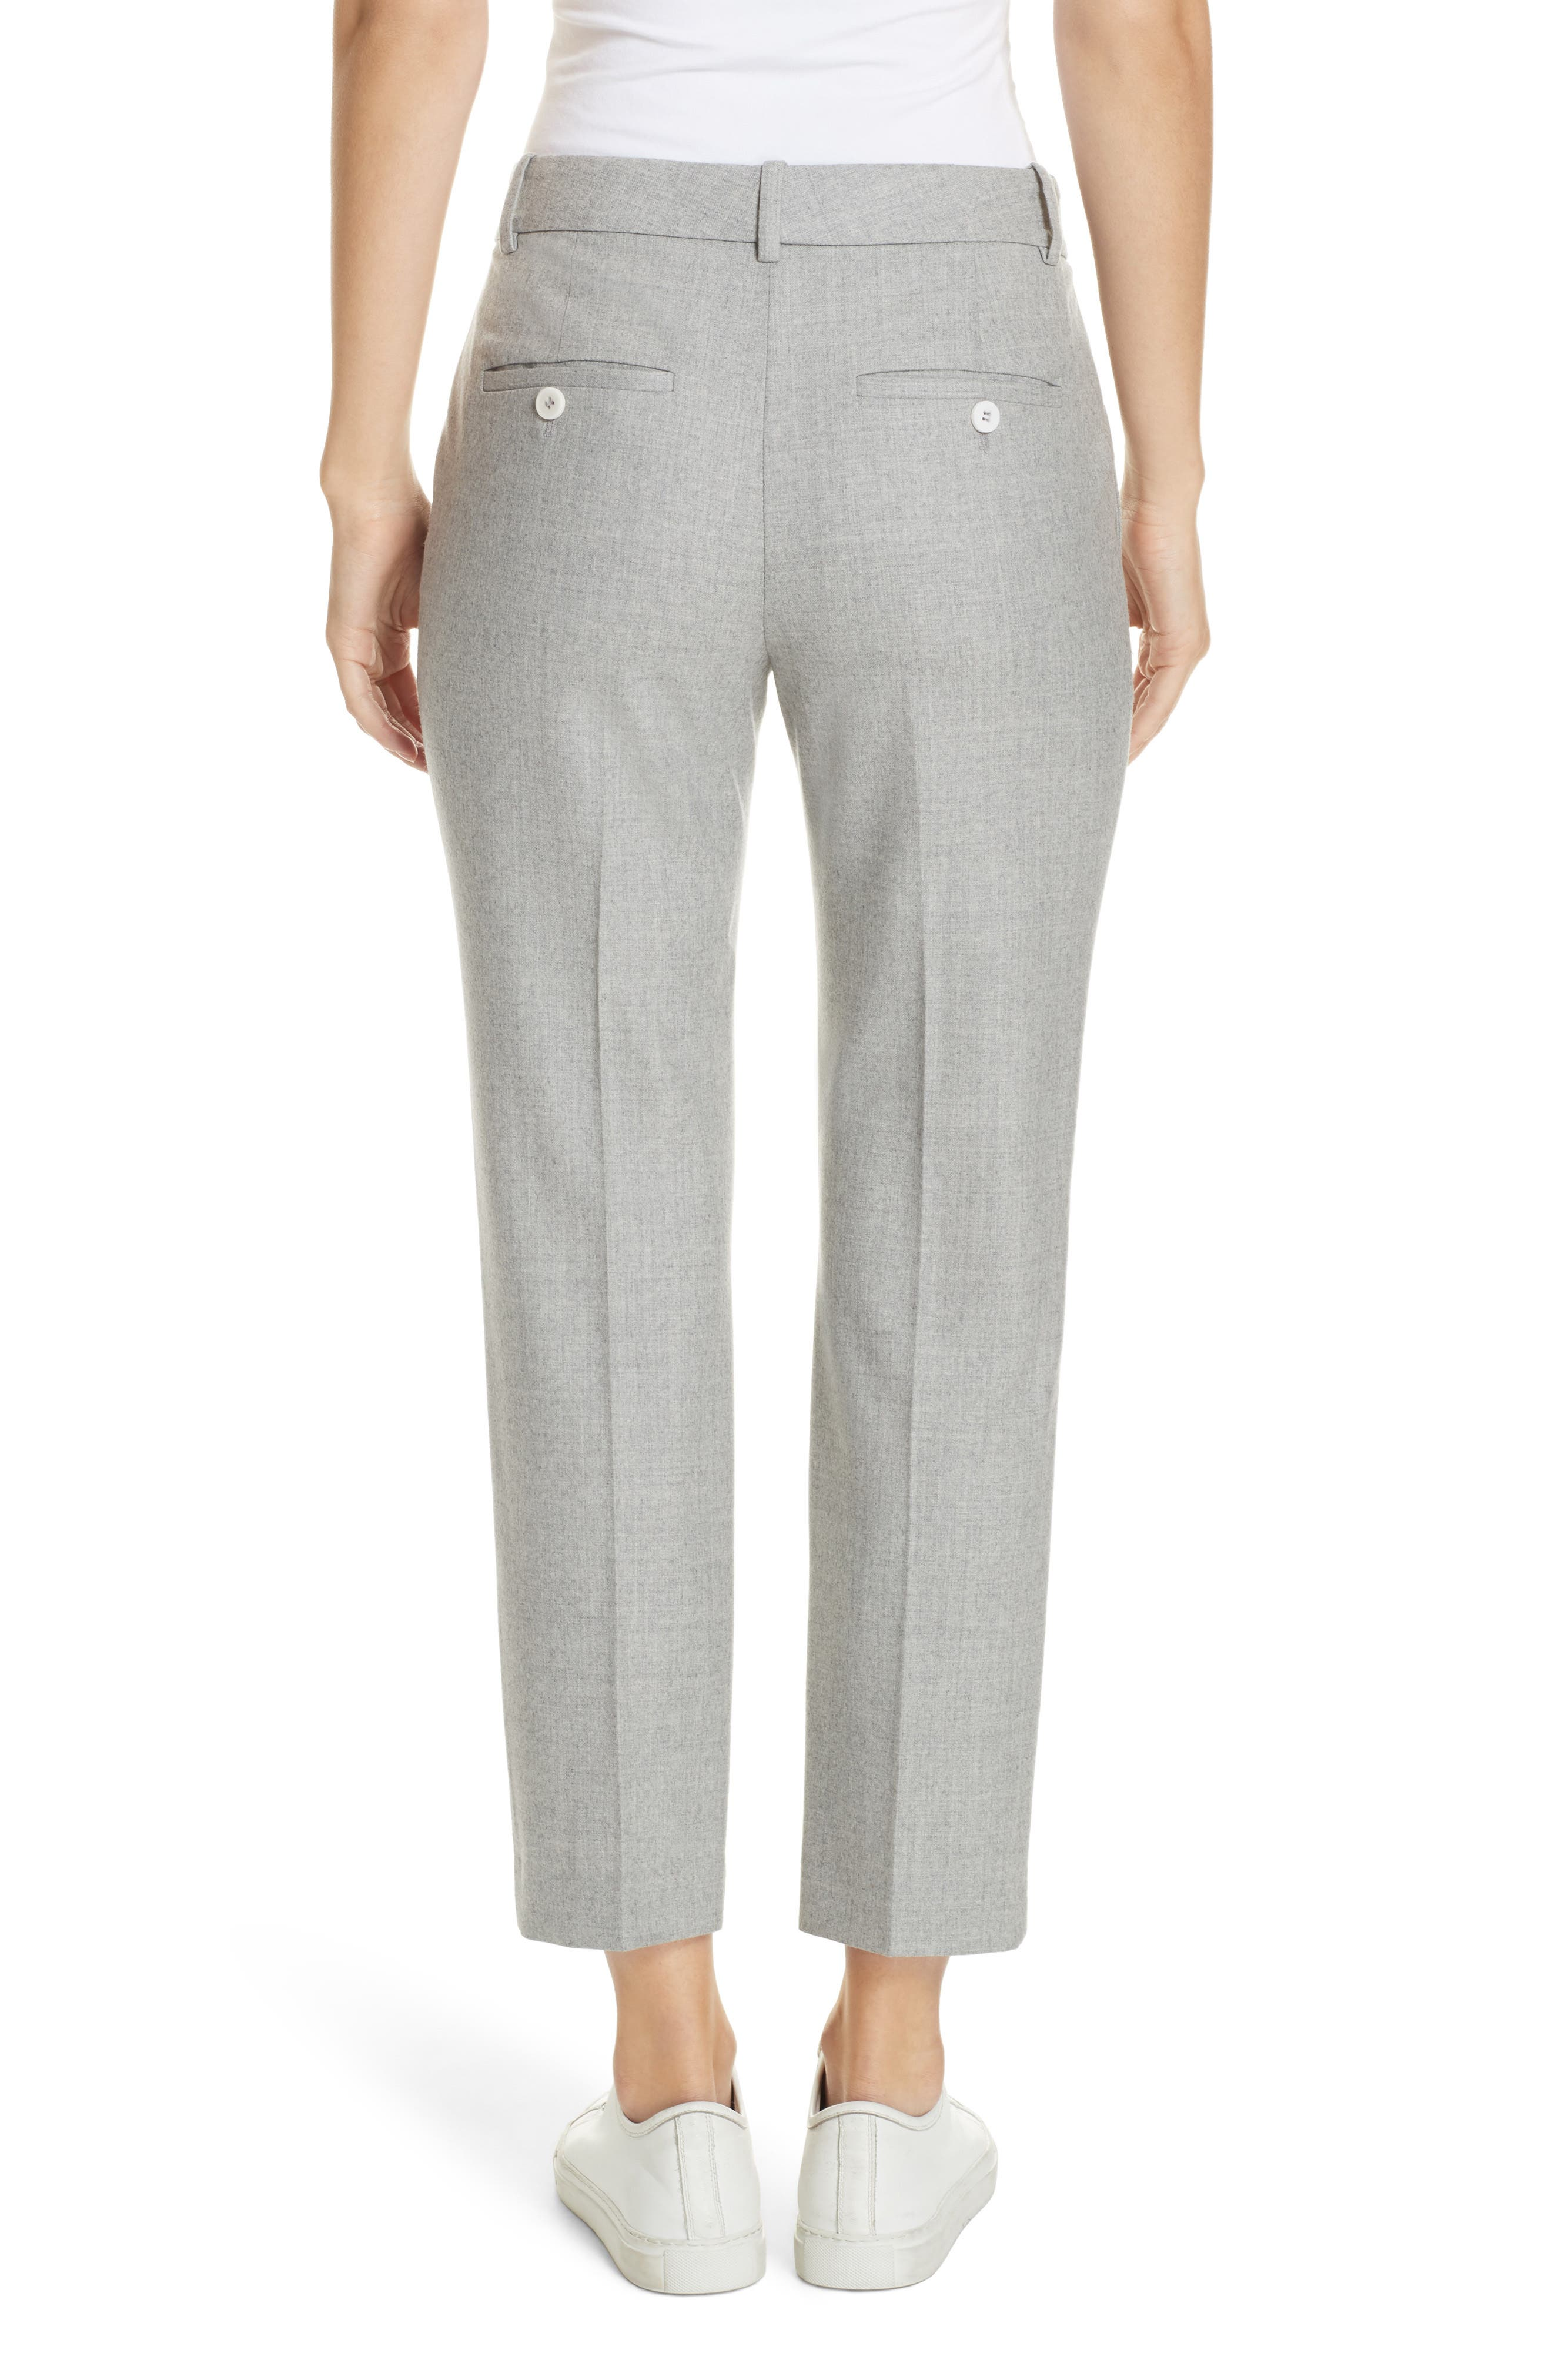 Treeca Flannel Ankle Pants,                             Alternate thumbnail 2, color,                             PALE GREY